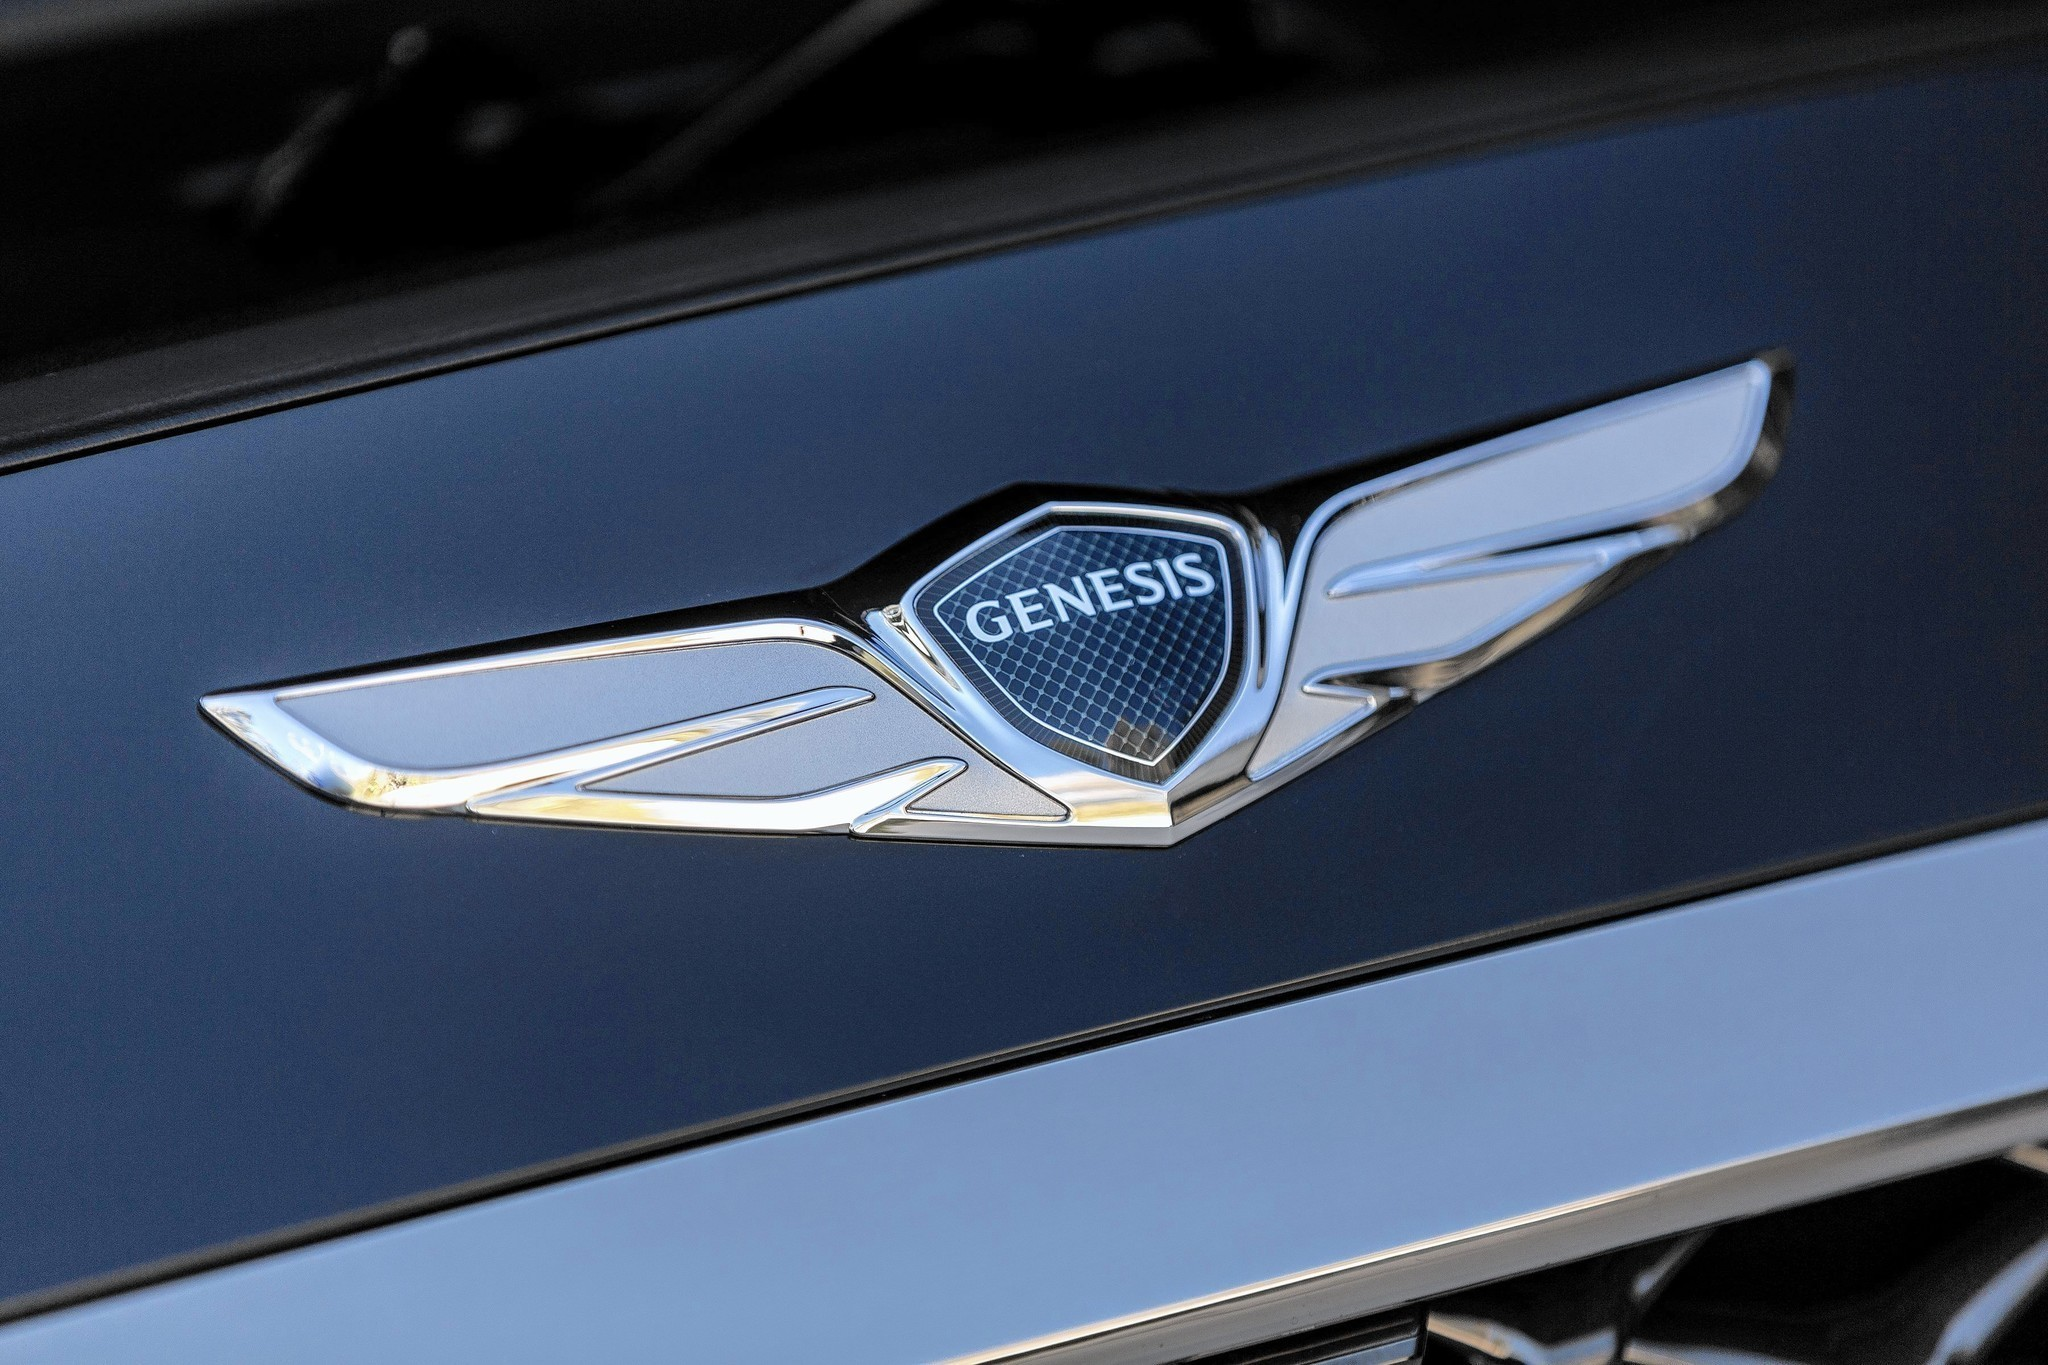 Genesis Of Hyundai S Luxury Subbrand Offers Premium Value Chicago Tribune